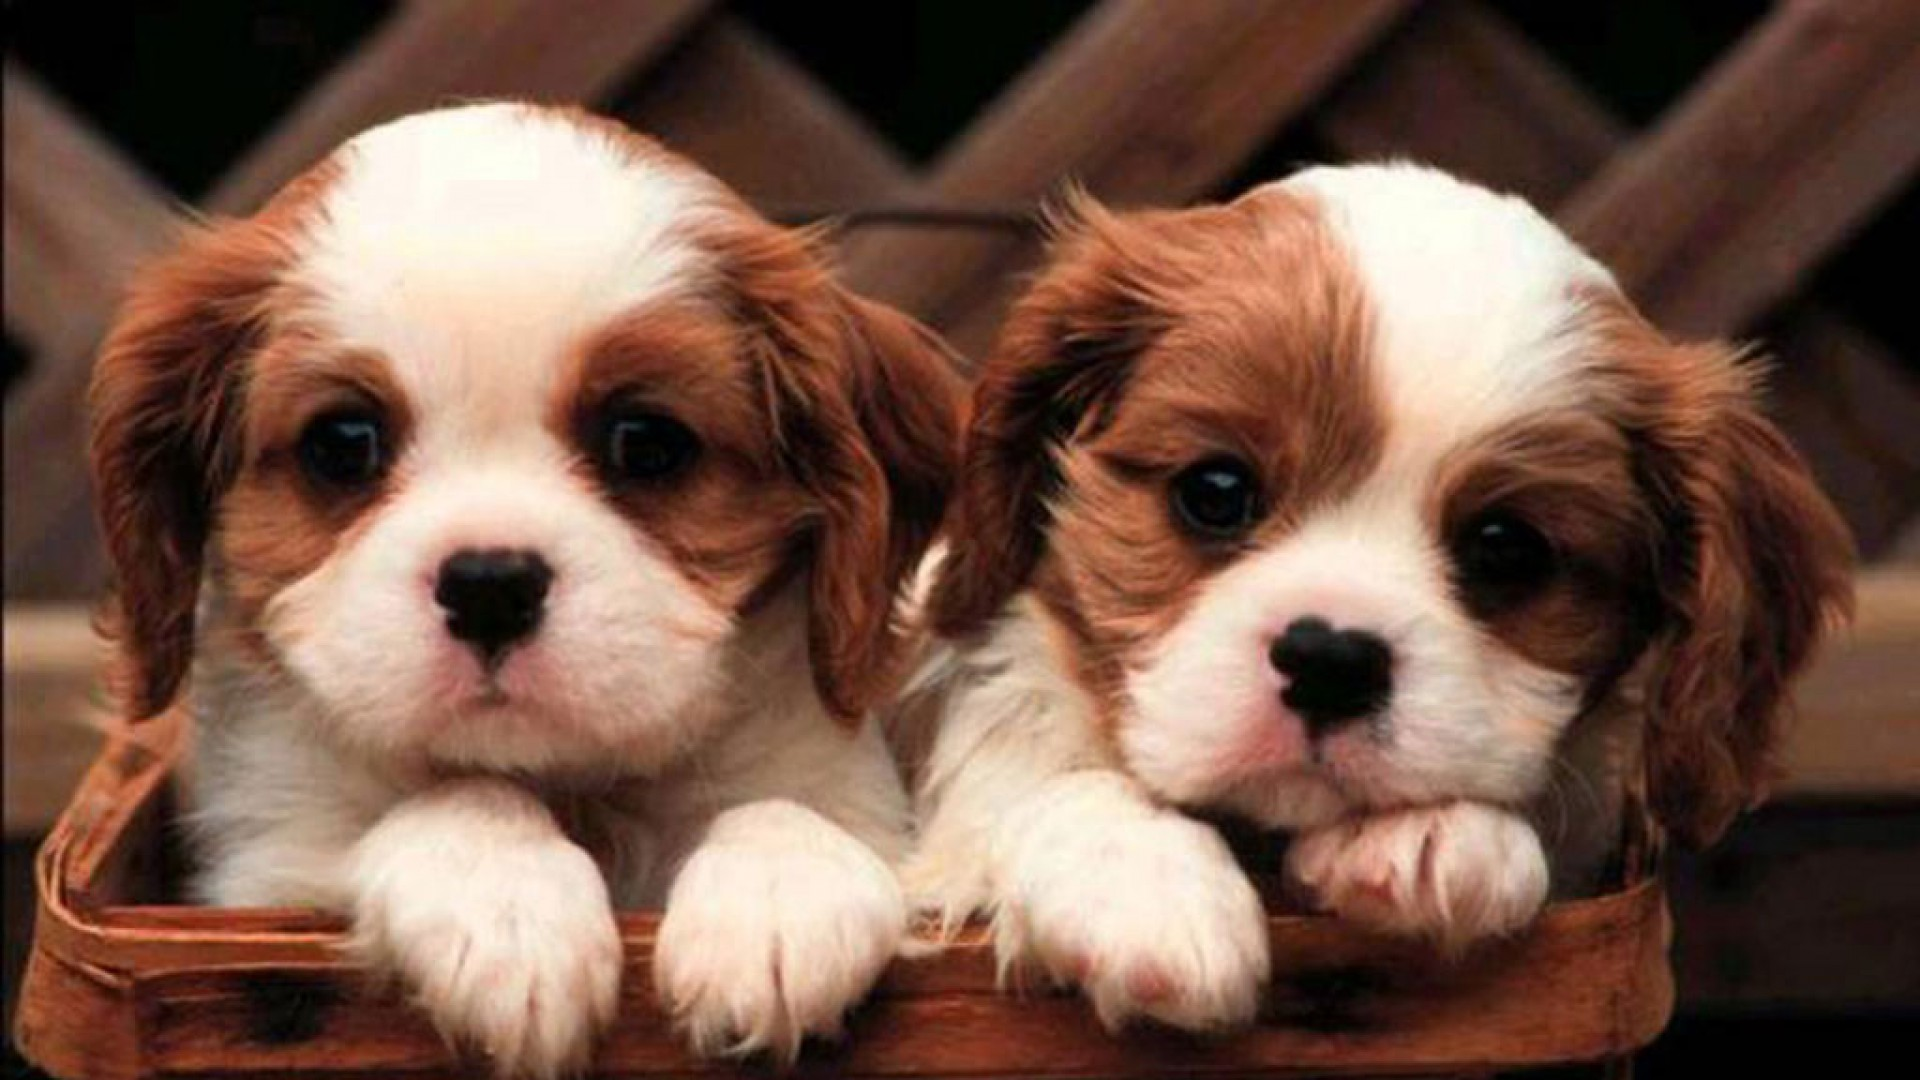 Adorable Puppy Pictures That Will Make Your Day Better 1090706790